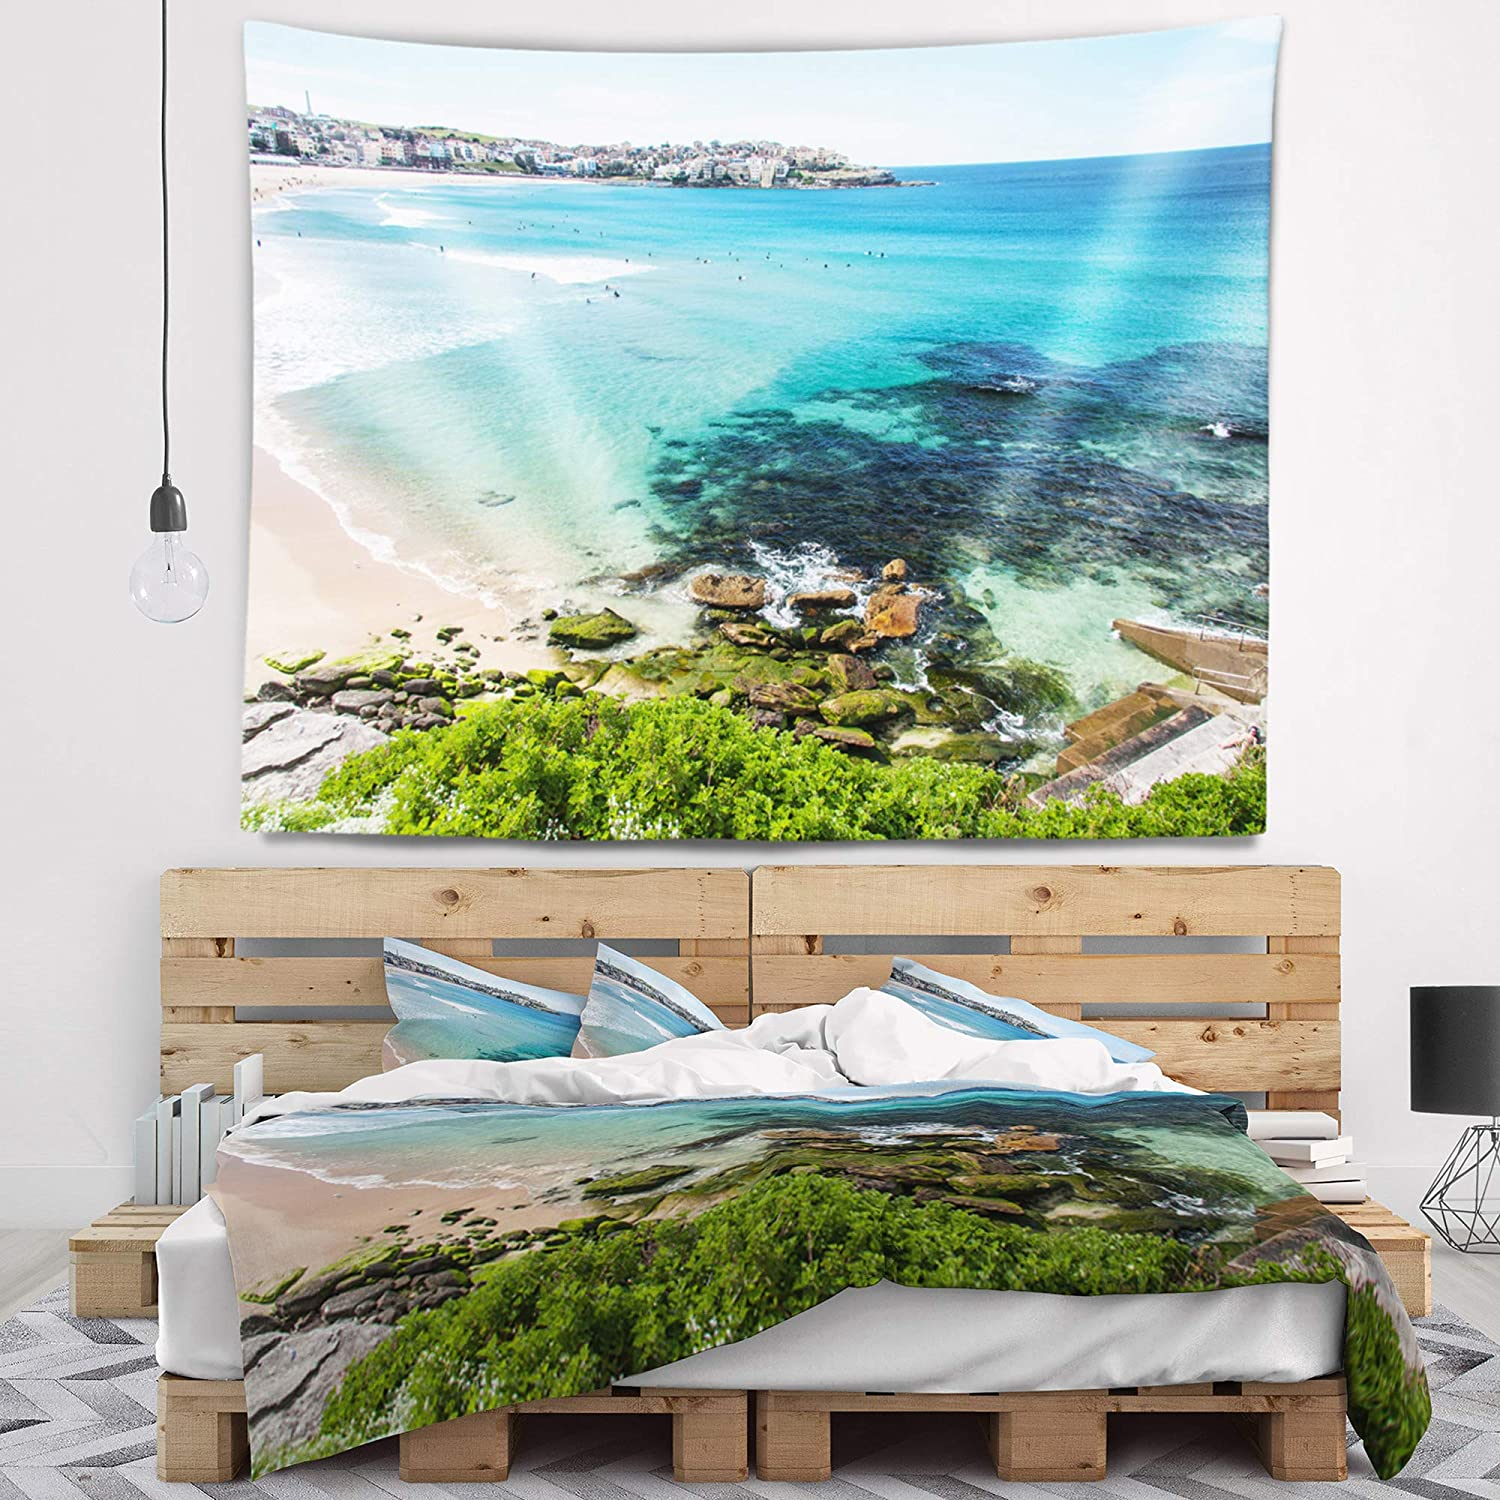 Designart 'Expansive Sydney Bondi Beach' Seashore Tapestry Blanket Décor Wall Art for Home and Office, Created On Lightweight Polyester Fabric x Large: 80 in. x 68 in